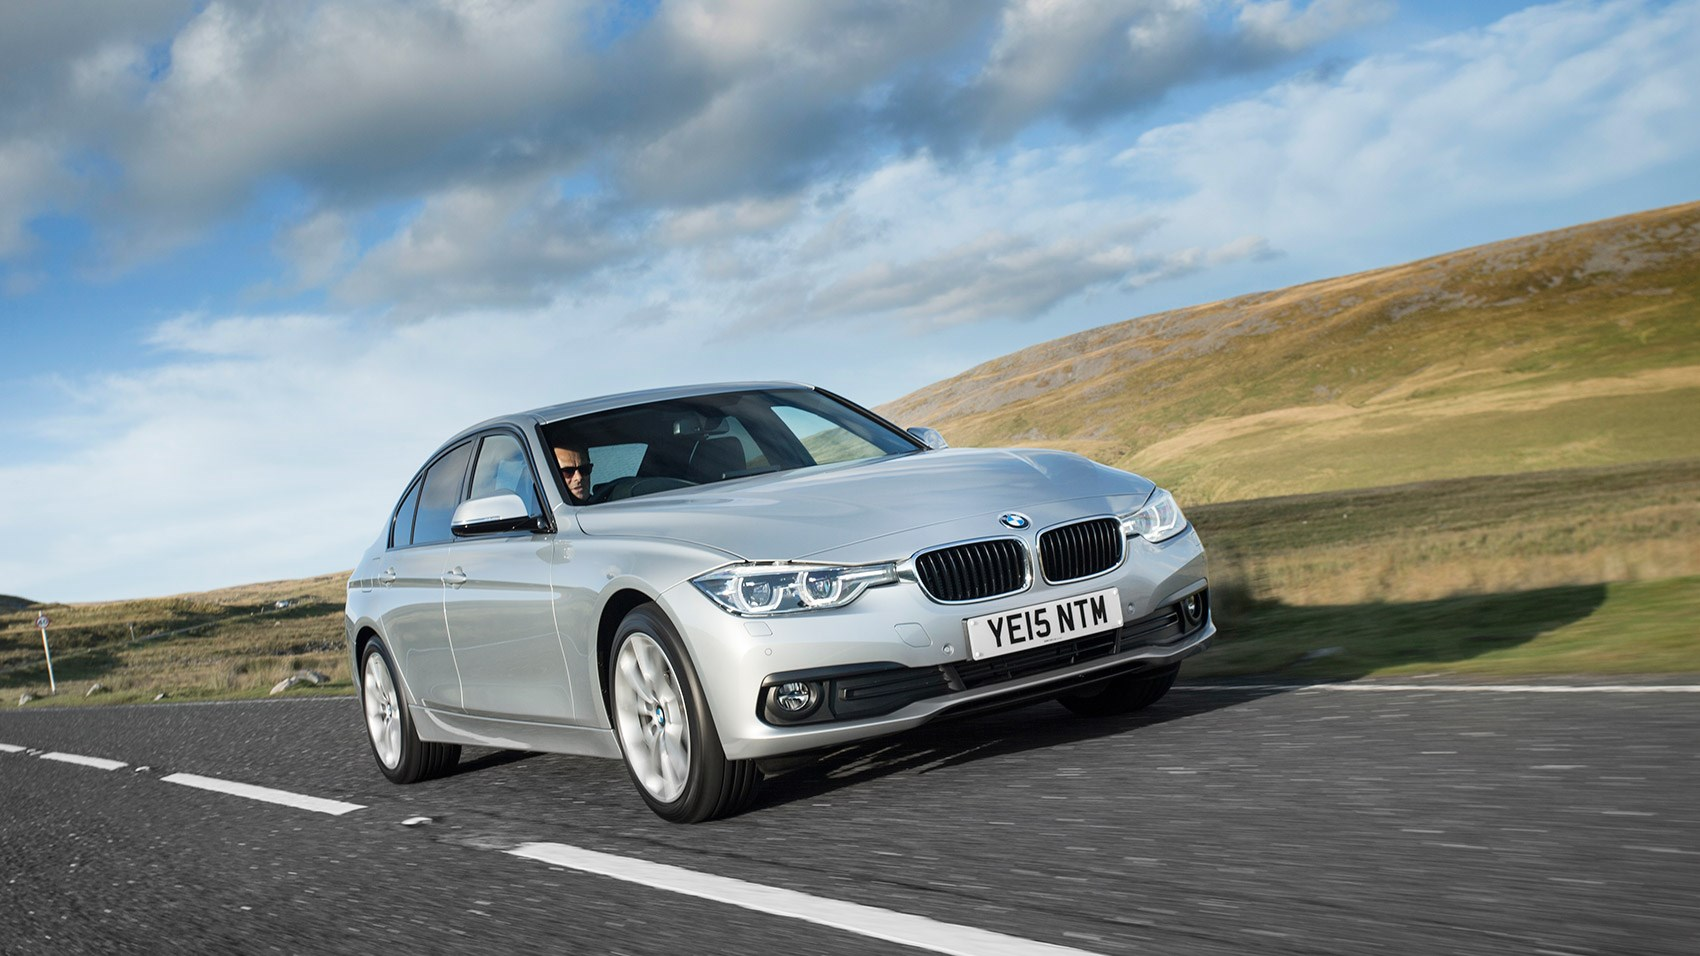 bmw 320d 2017 edition sport launched in india at price of rs lakhsauto news. Black Bedroom Furniture Sets. Home Design Ideas